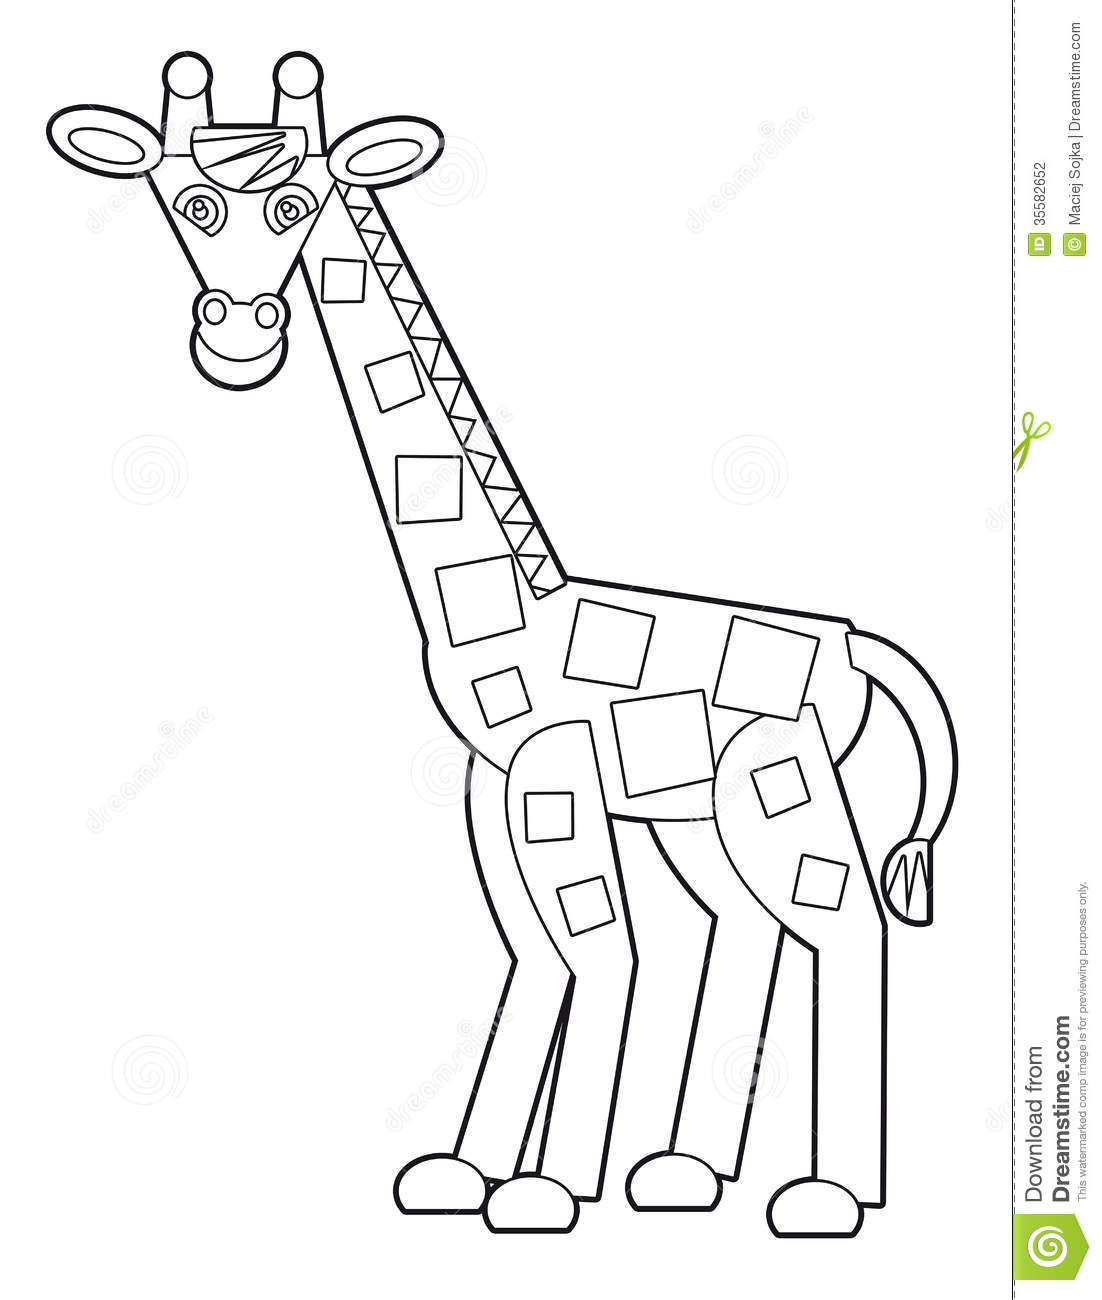 Cartoon wild animal coloring page for the children stock Crazy animals coloring book